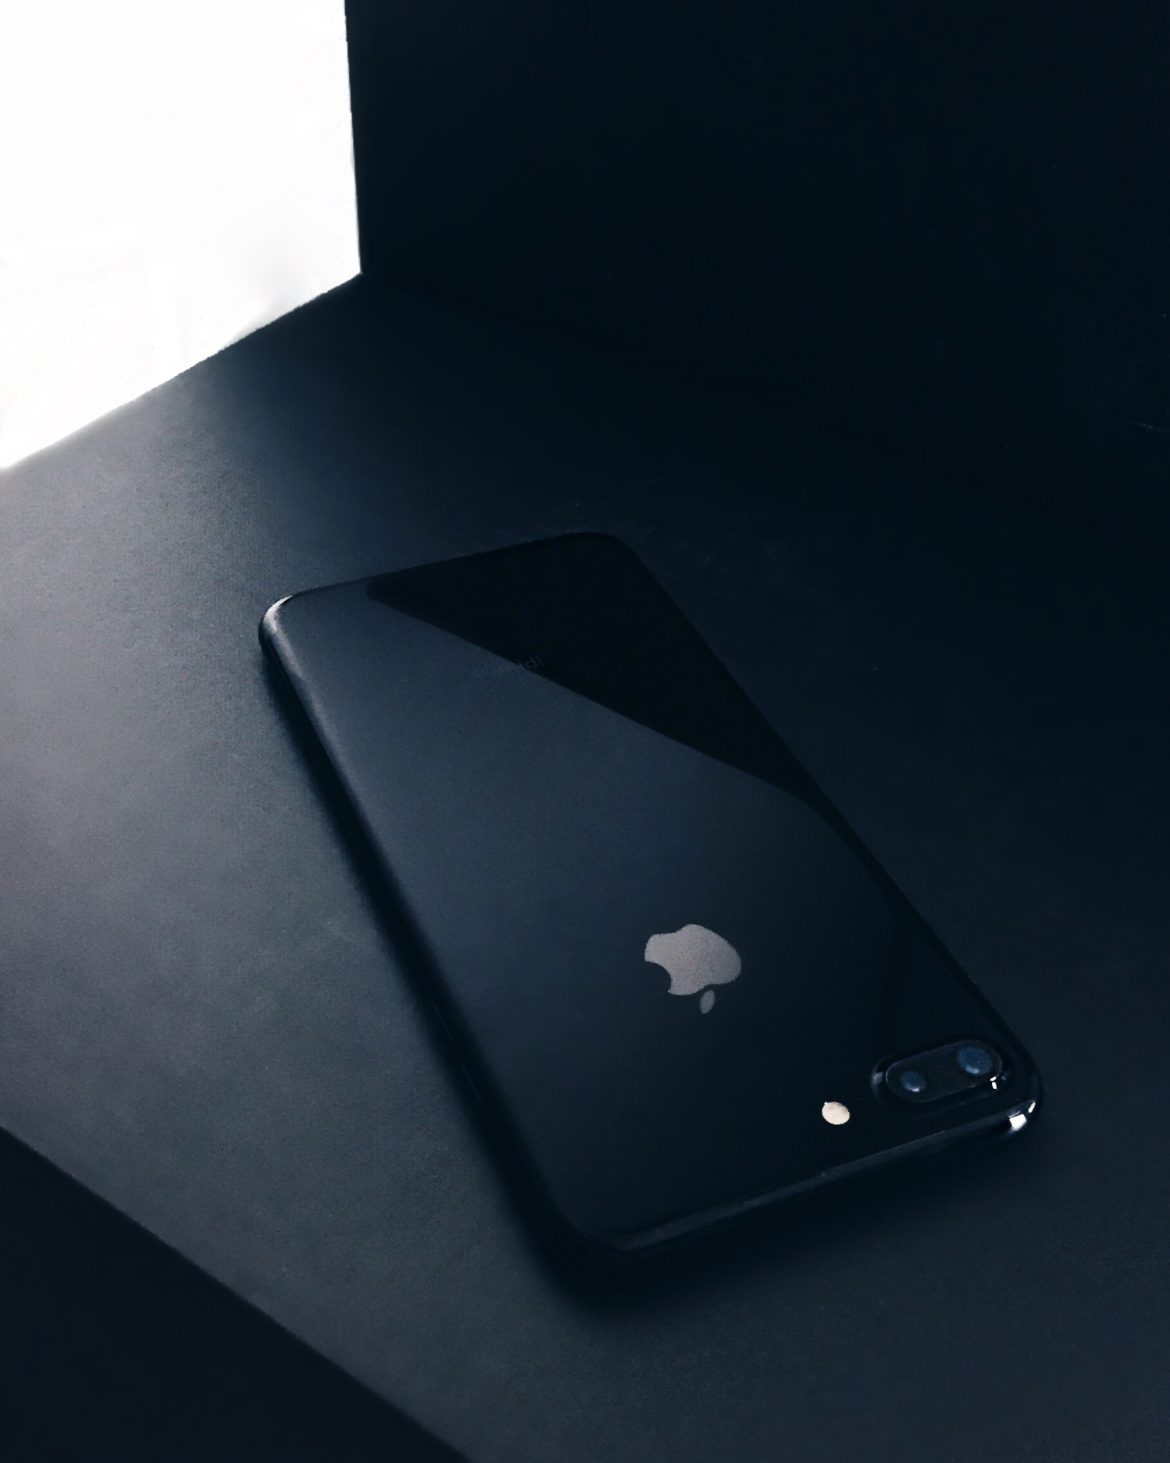 Iphone 7 Plus Preto Brilhante - Iphone 7 Plus Jet Black - Flatlay